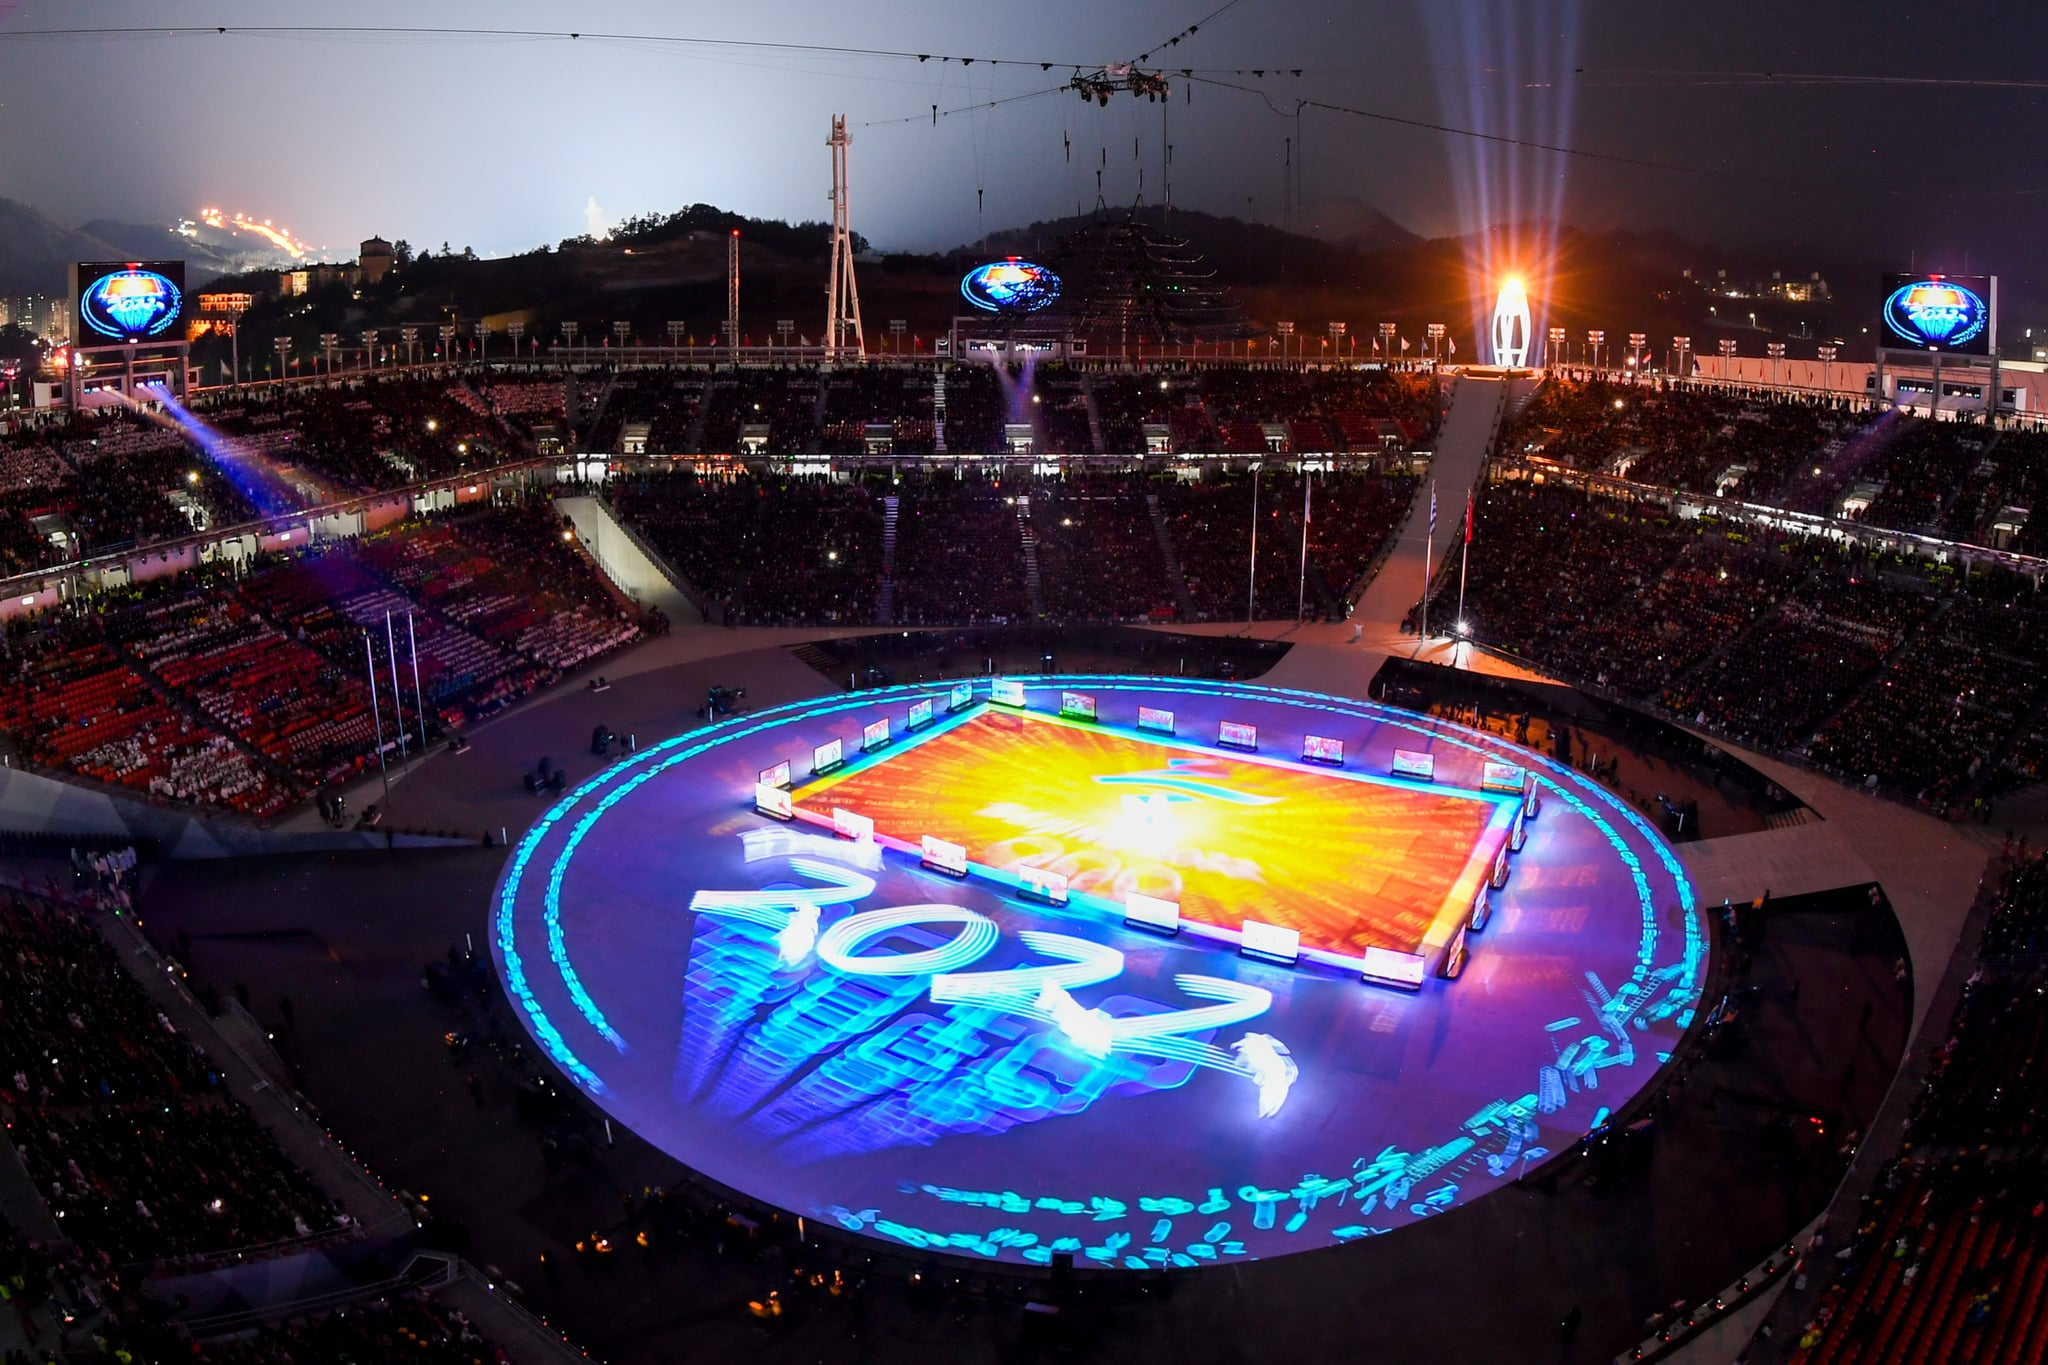 General view shows Beijing 2022 projected on stage during the closing ceremony of the Pyeongchang 2018 Winter Olympic Games at the Pyeongchang Stadium on February 25, 2018.The 2022 Winter Olympic Games will be held in Beijing. / AFP PHOTO / François-Xavier MARIT        (Photo credit should read FRANCOIS-XAVIER MARIT/AFP/Getty Images)